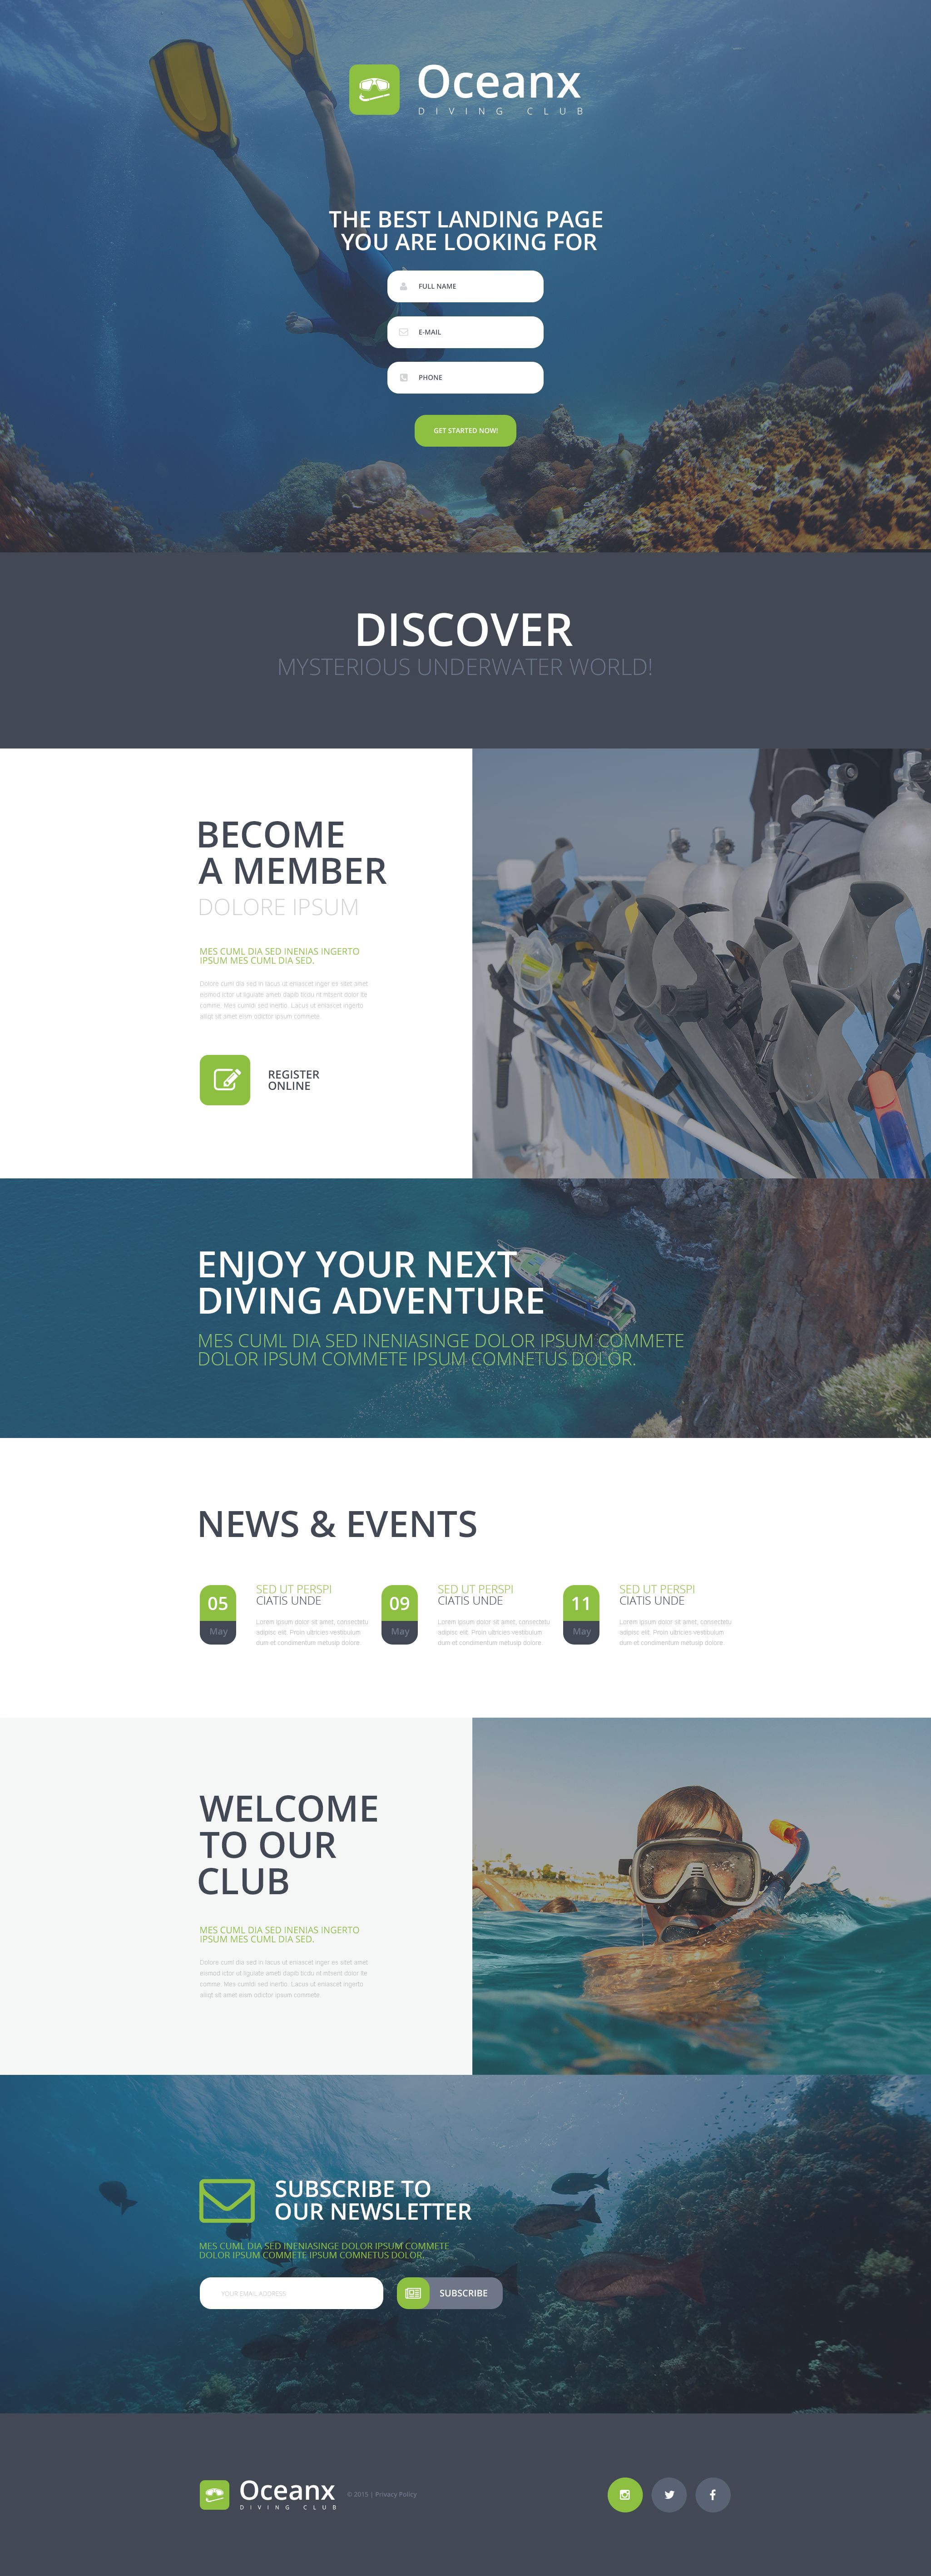 Diving Responsive Landing Page Template - Privacy page template